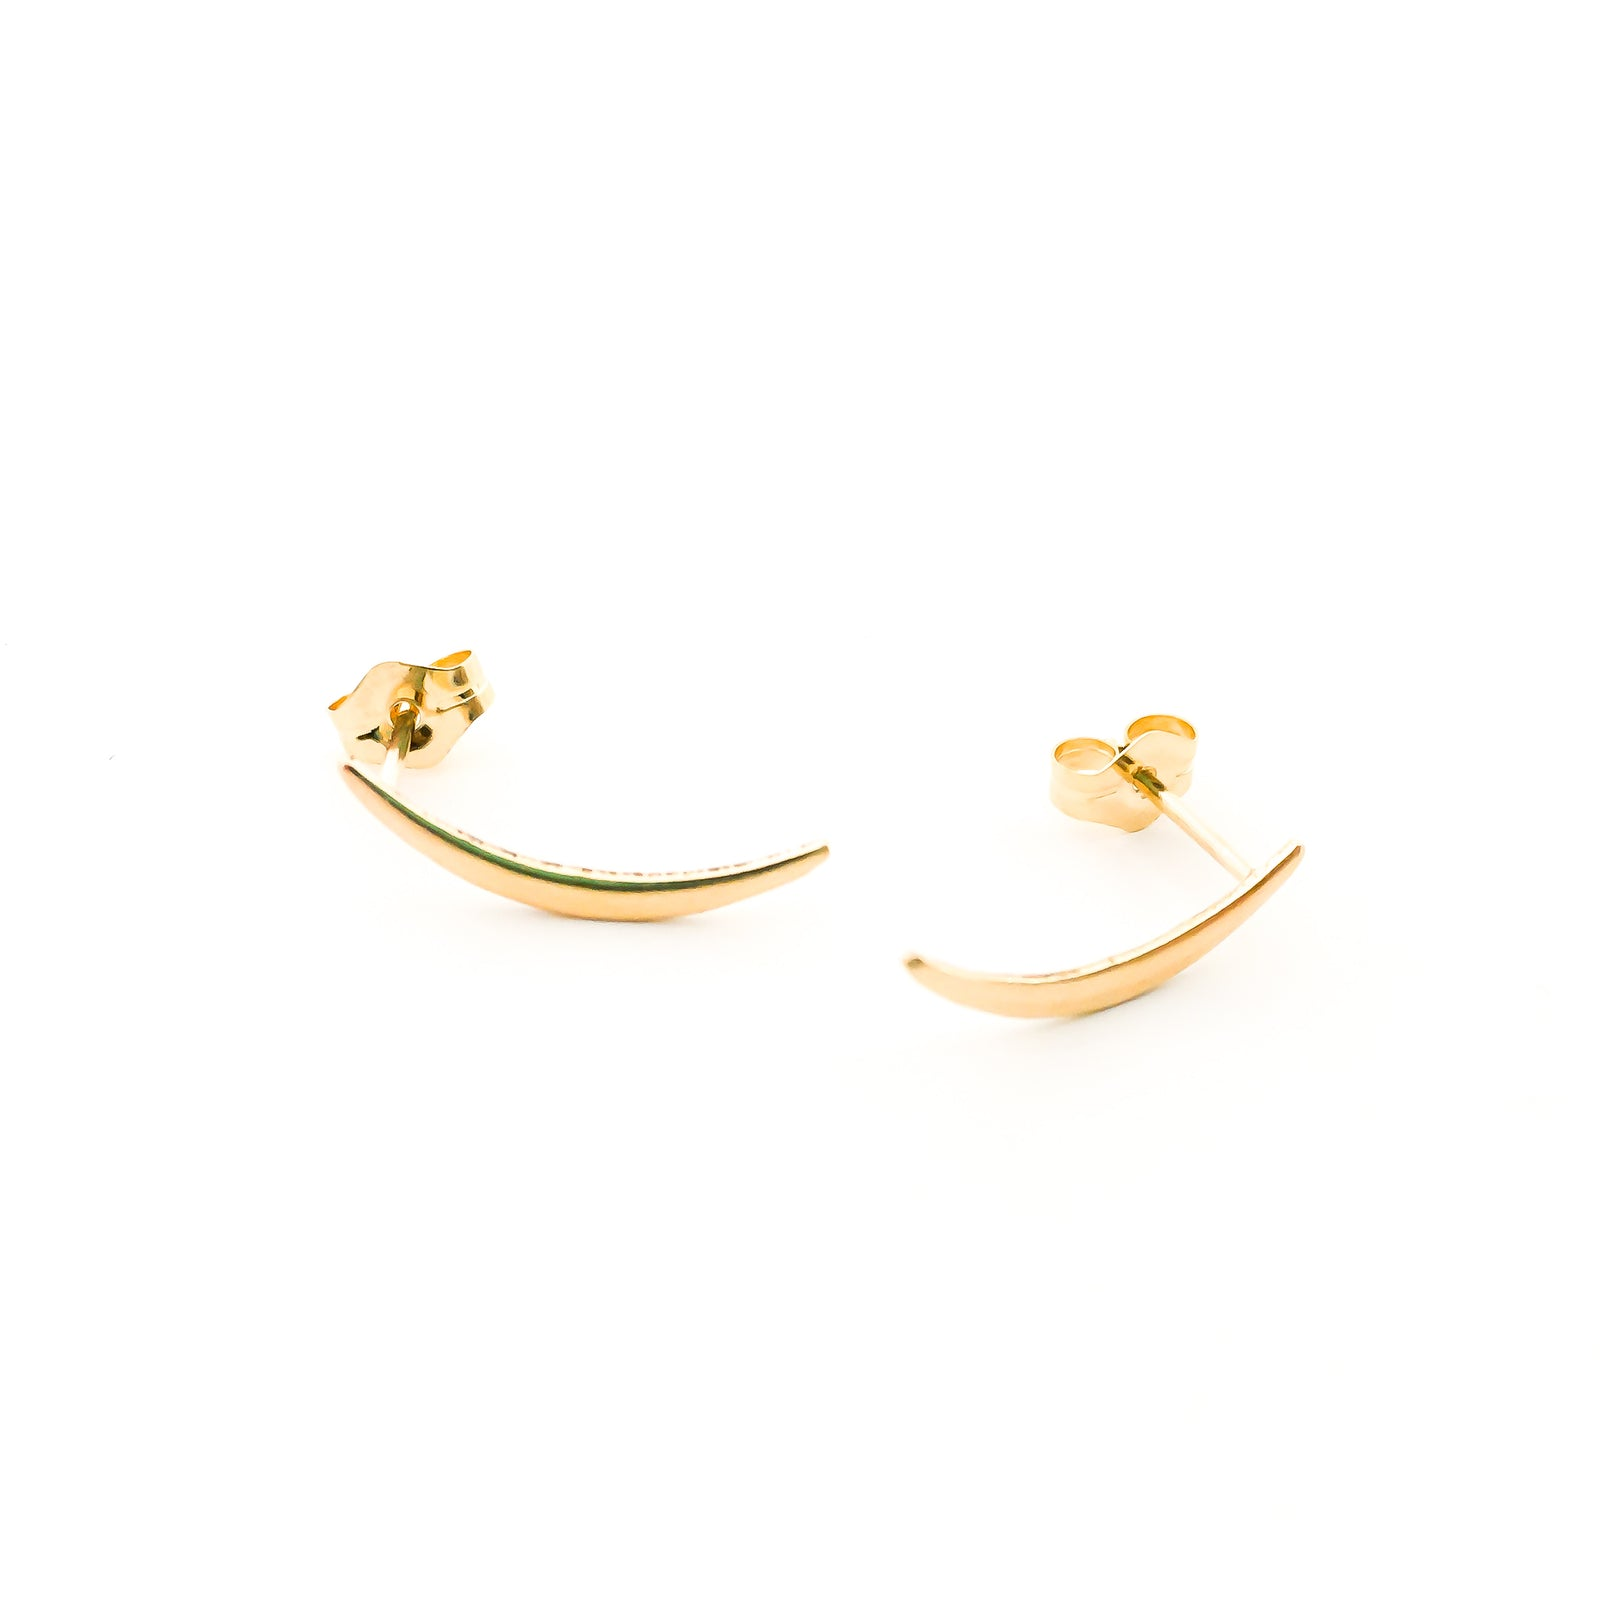 CURVED STUD EARRINGS | 14K GOLD-FILLED